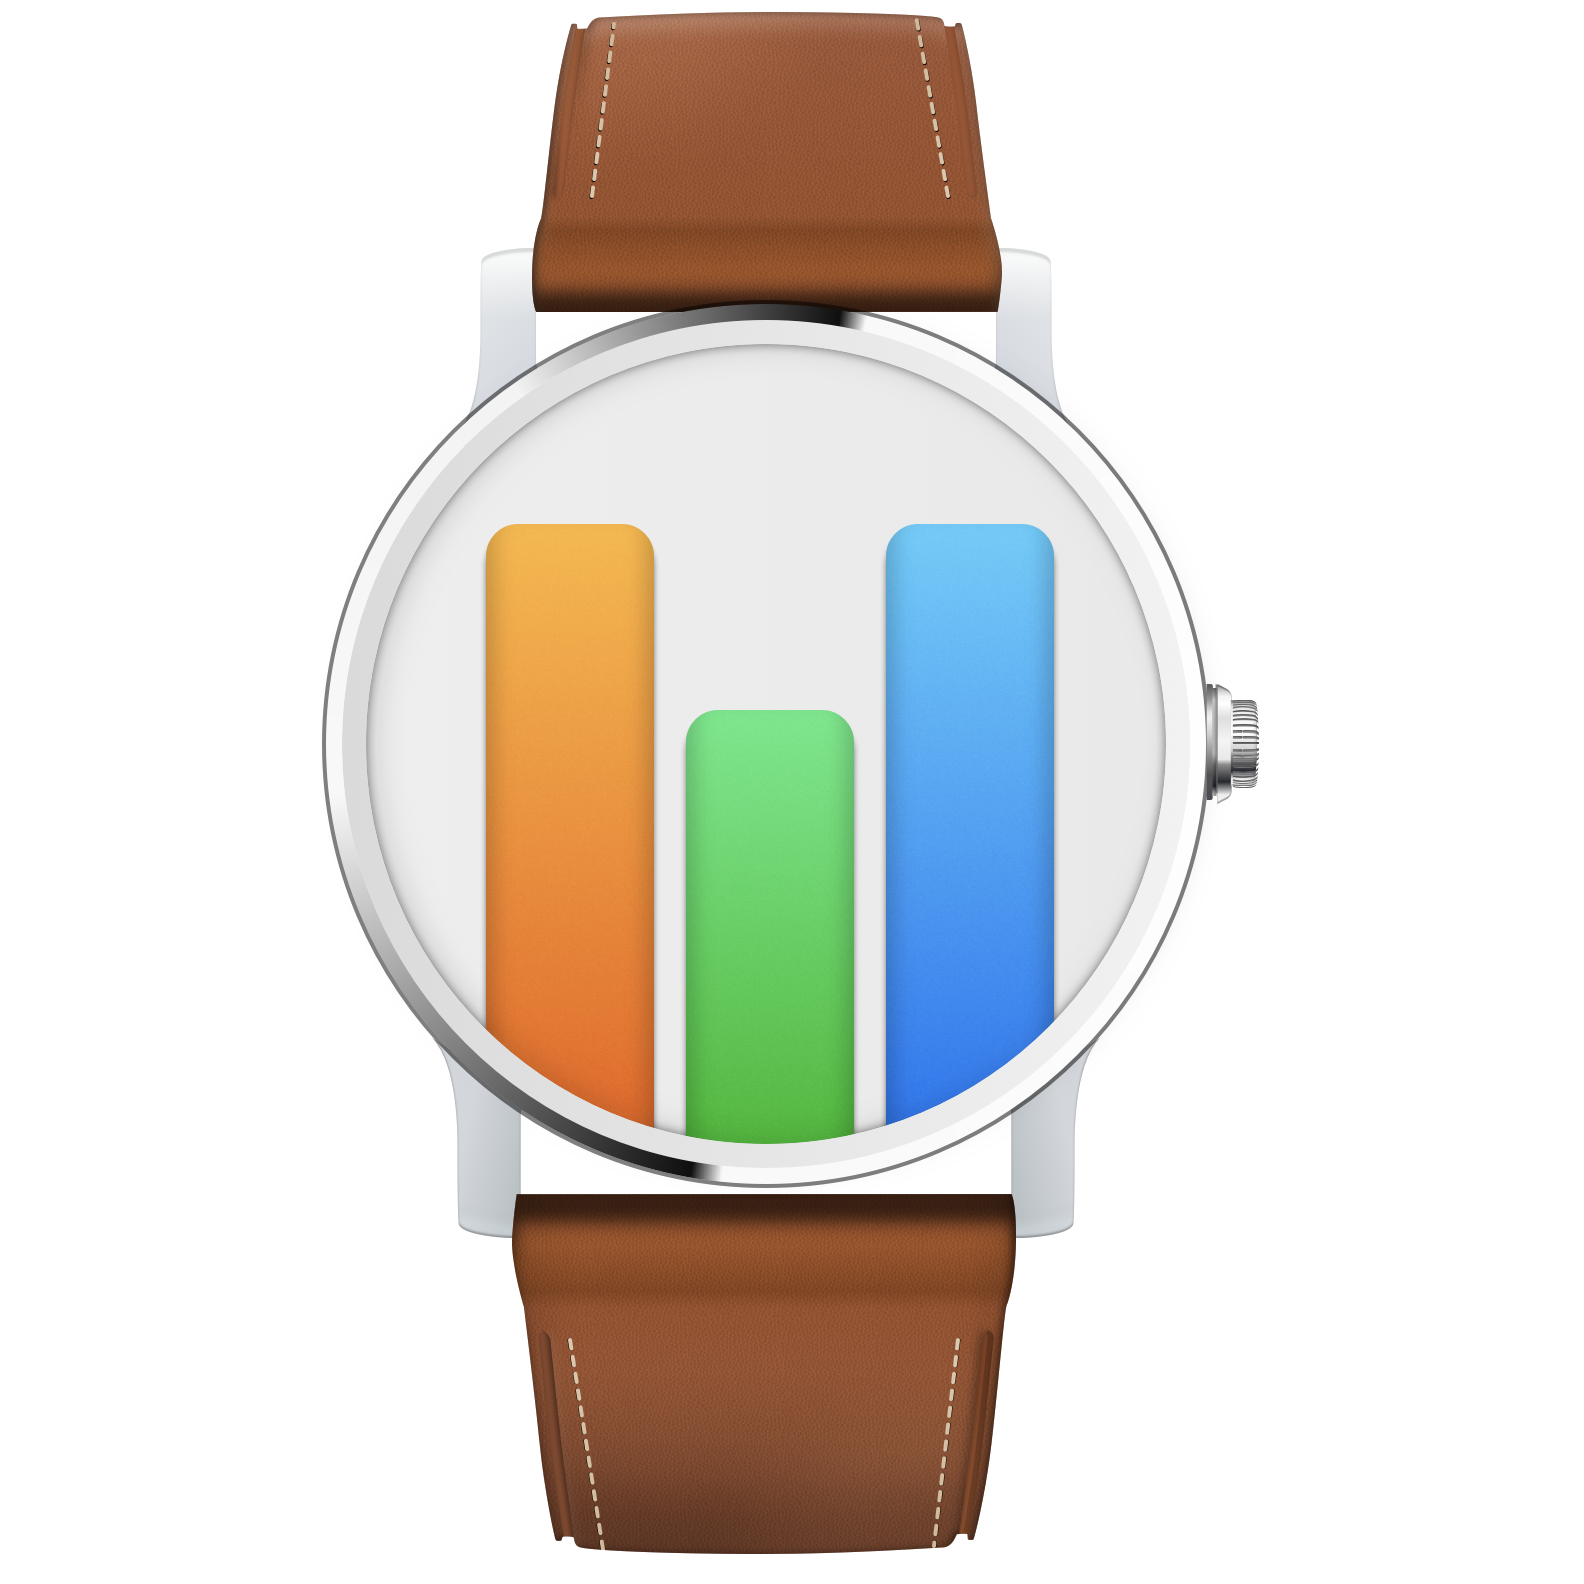 The Buildwatch icon.